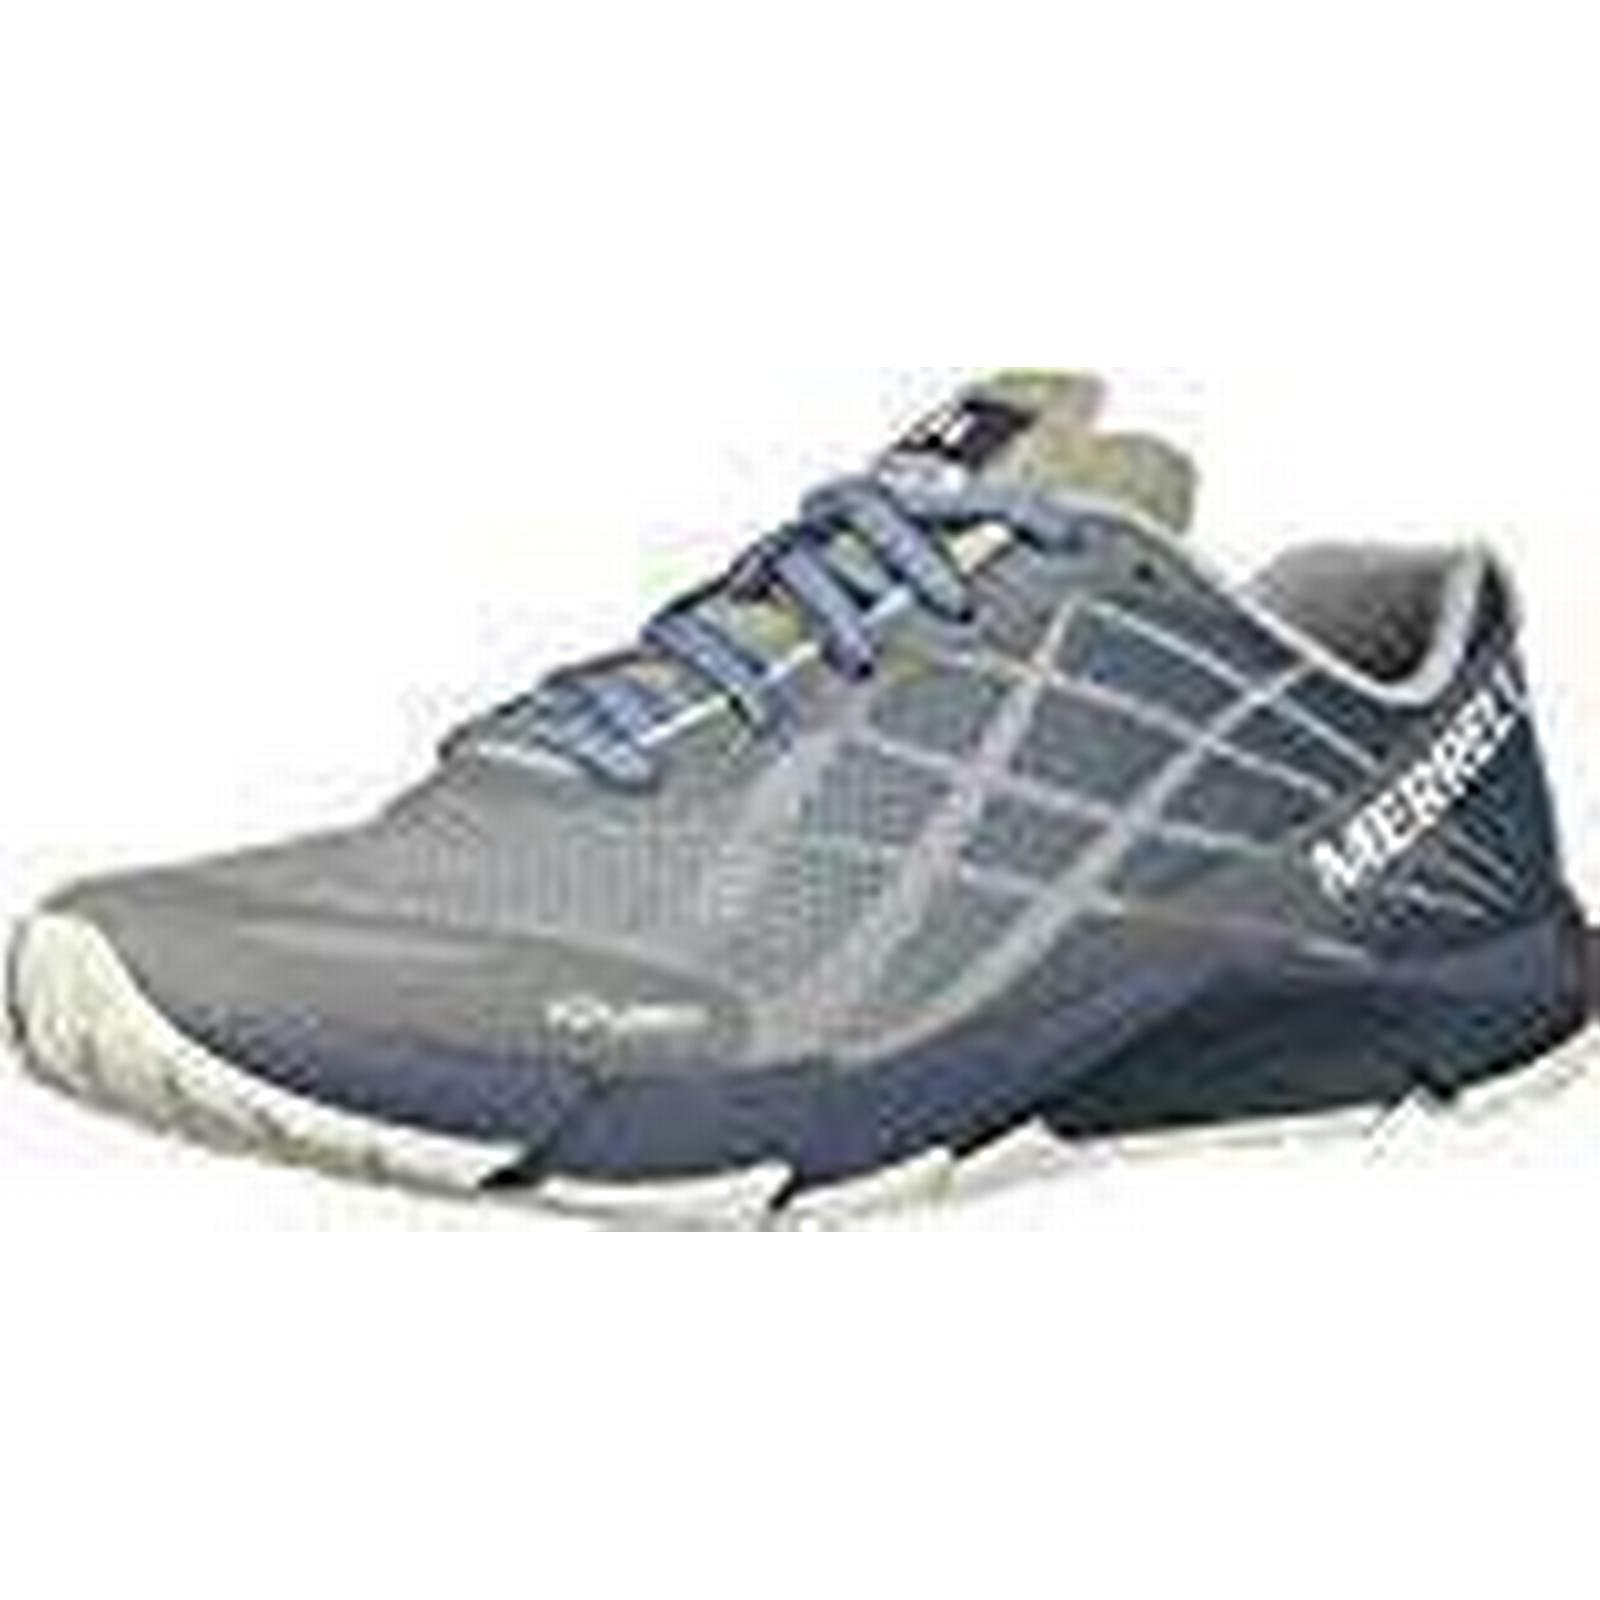 Merrell Women Bare Access Flex Fitness Shoes, Grey EU) (Vapor), 5 UK (38 EU) Grey 2926dc